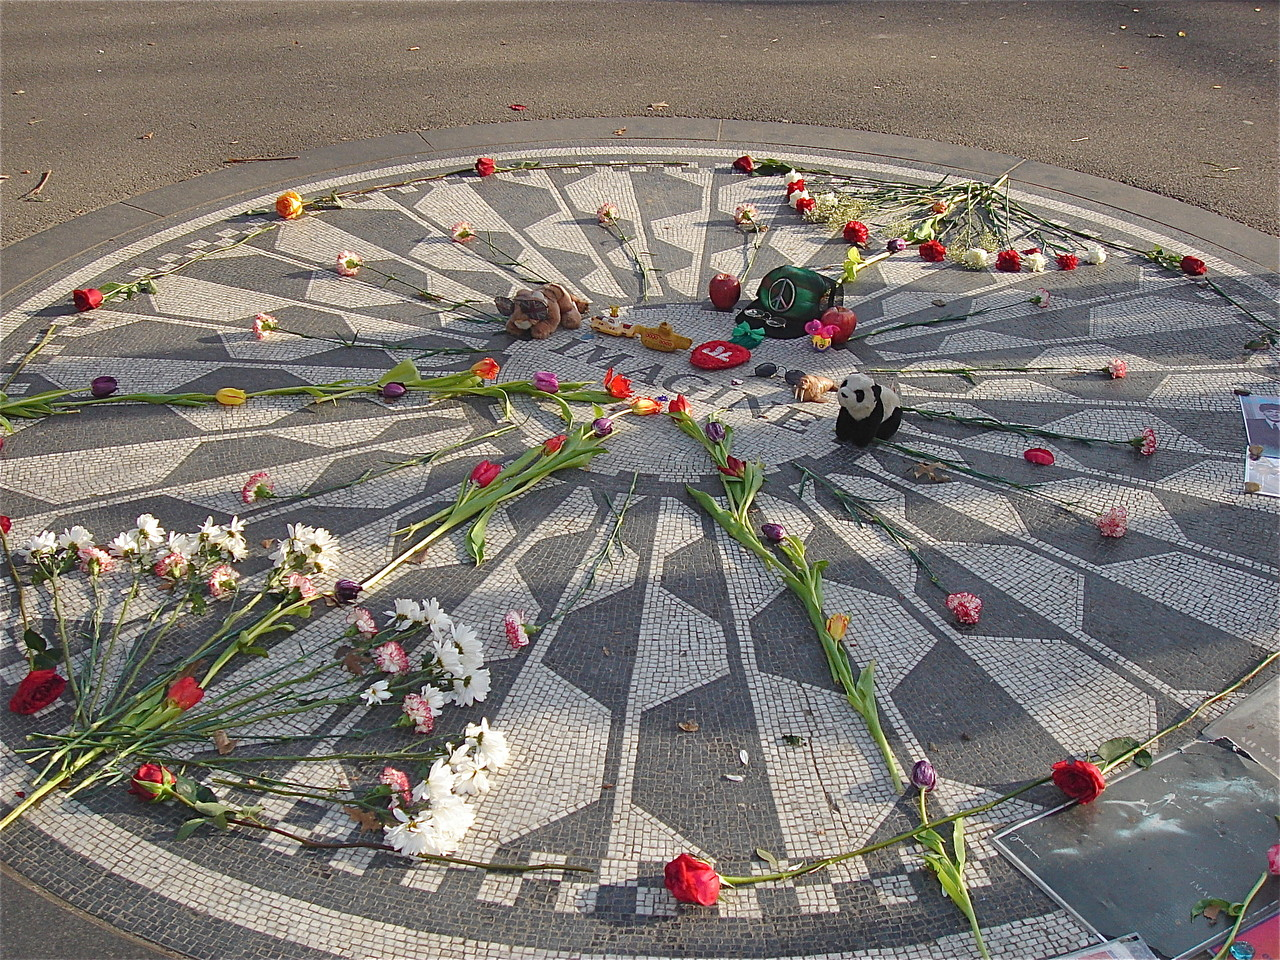 Imagine mosaic in honor of John Lennon